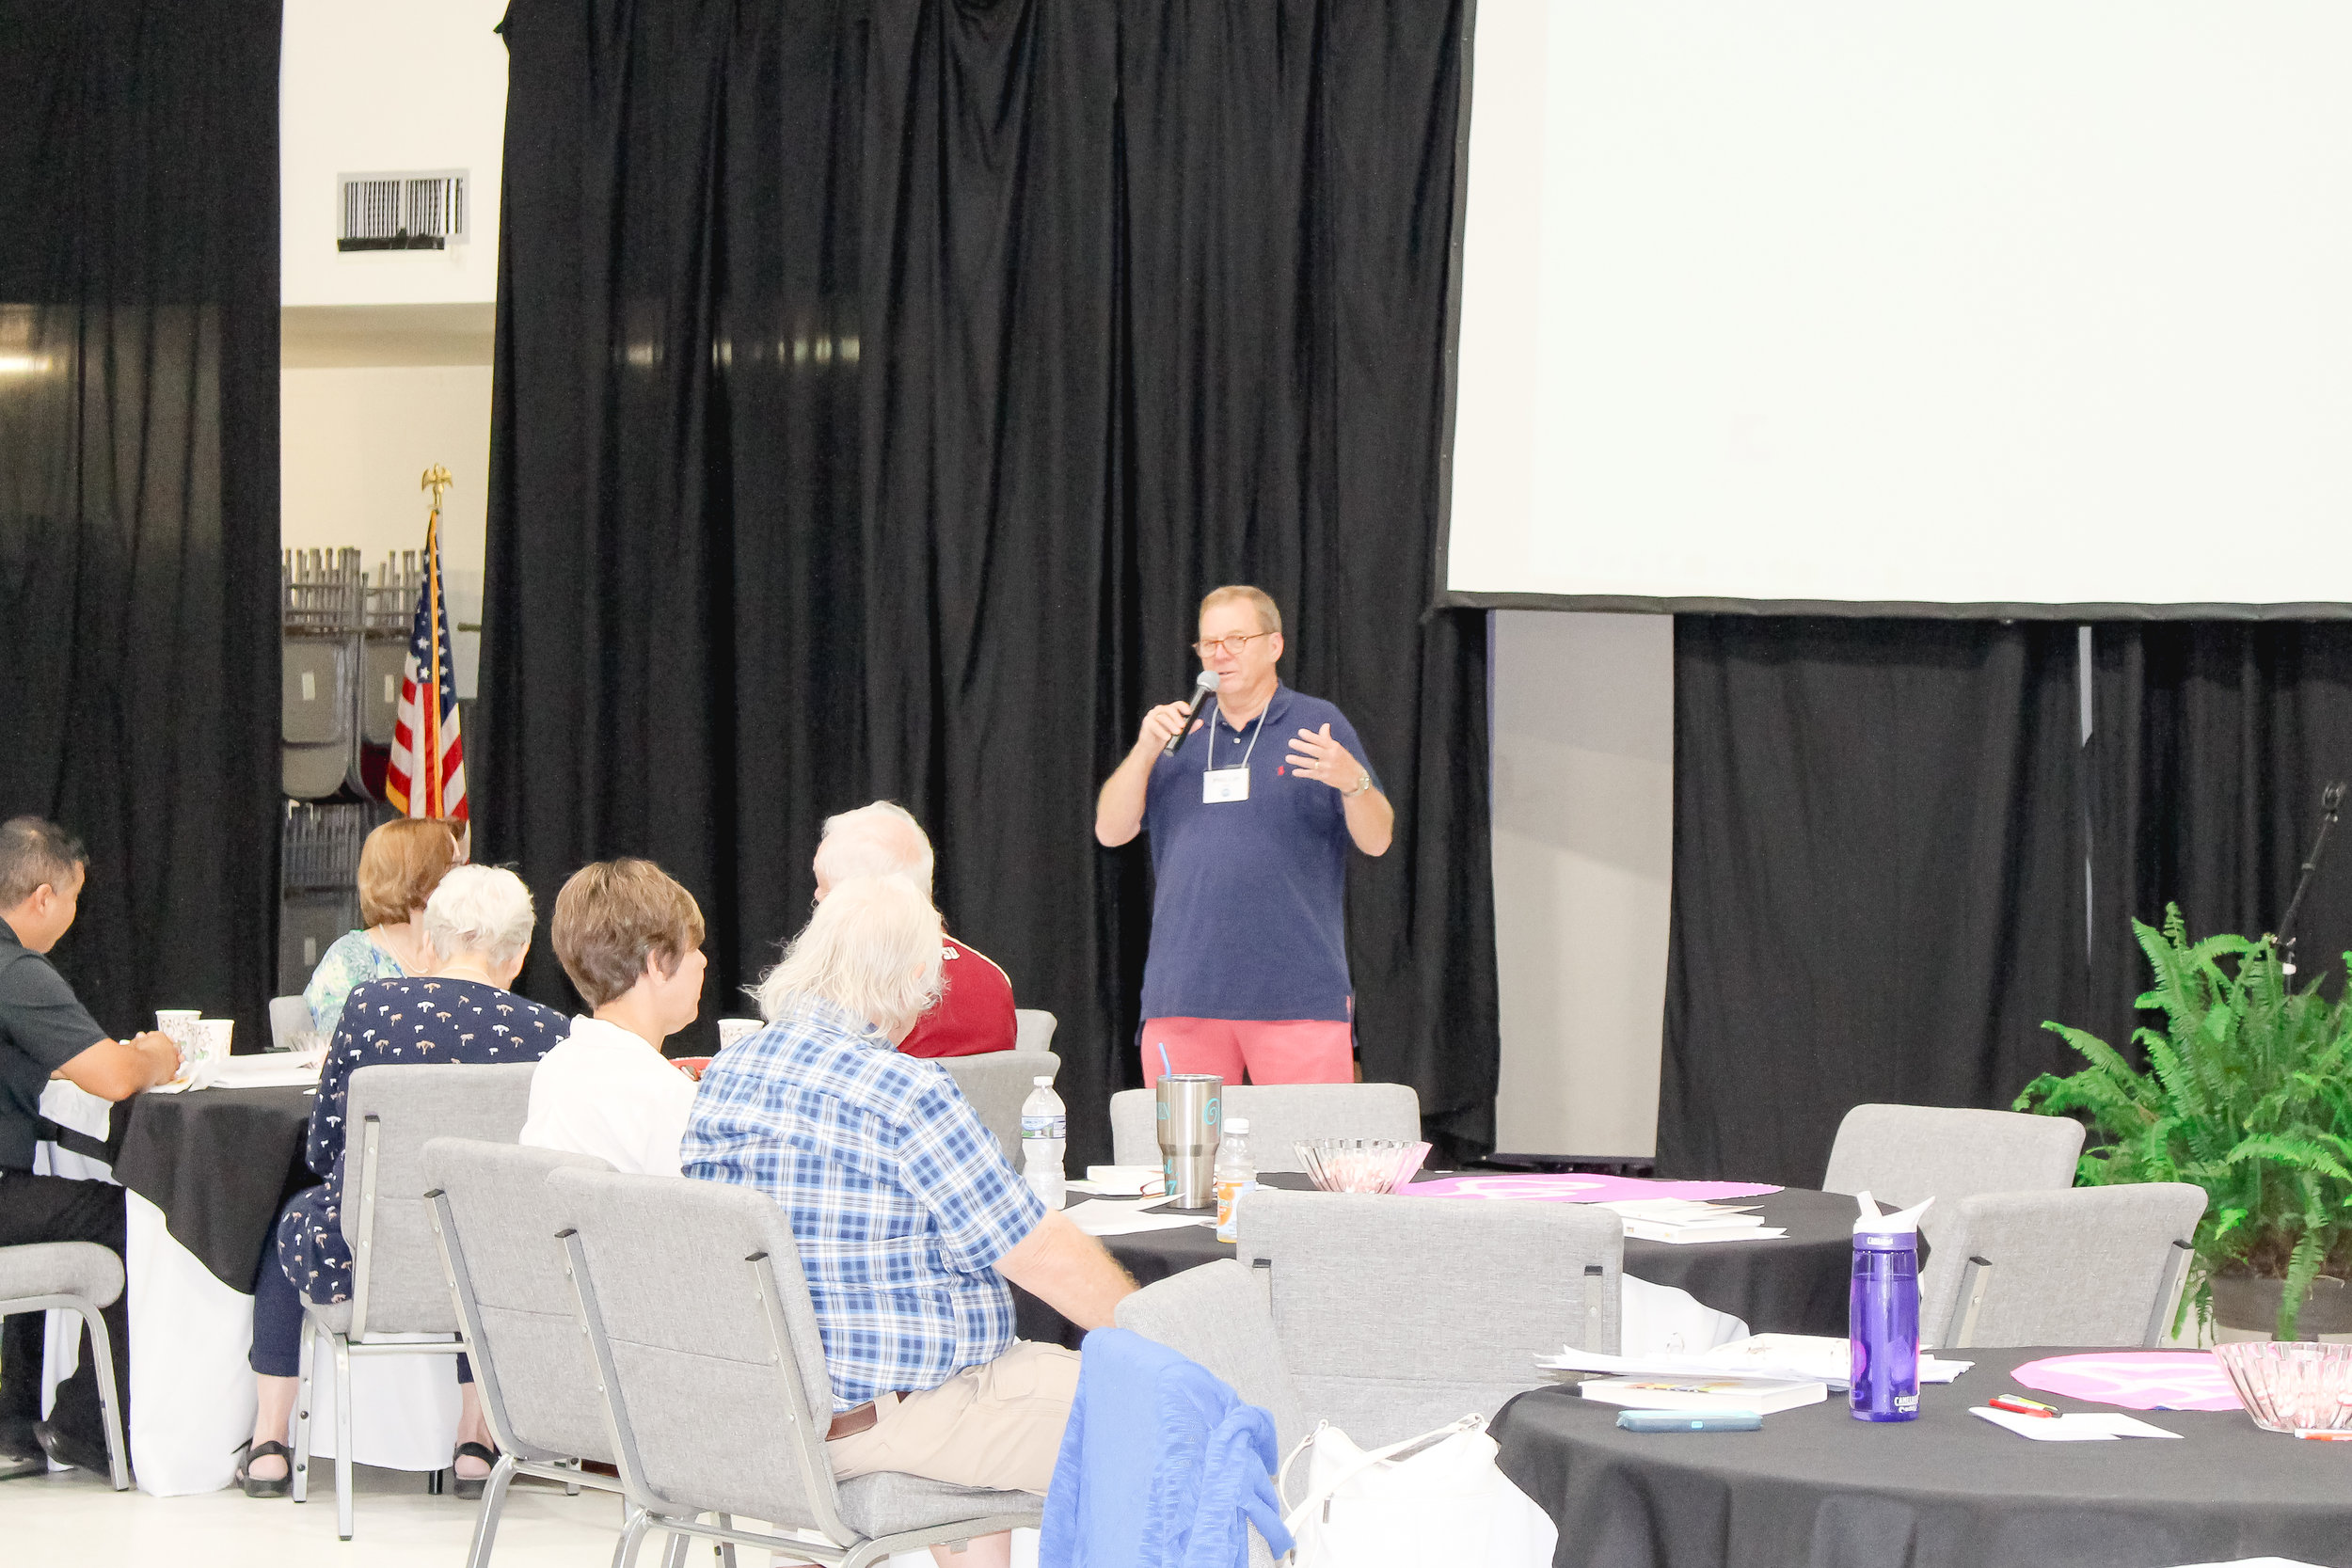 marriage_ministry_training_2018 (5 of 19).jpg